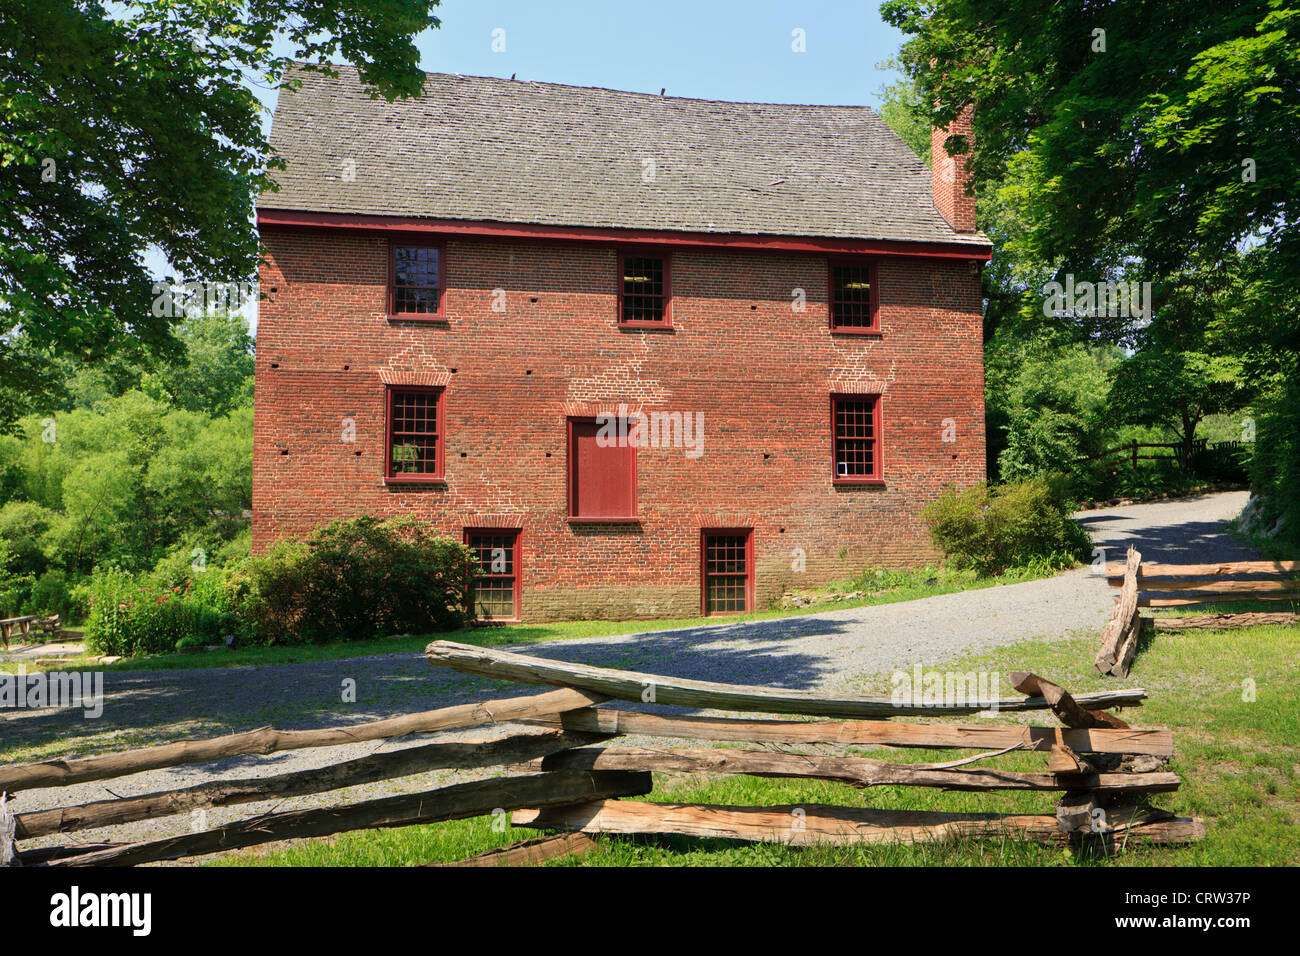 Colvin Run Mill Historic Site, a water-powered gristmill, built about 1805, Great Falls, Virginia, Fairfax County - Stock Image